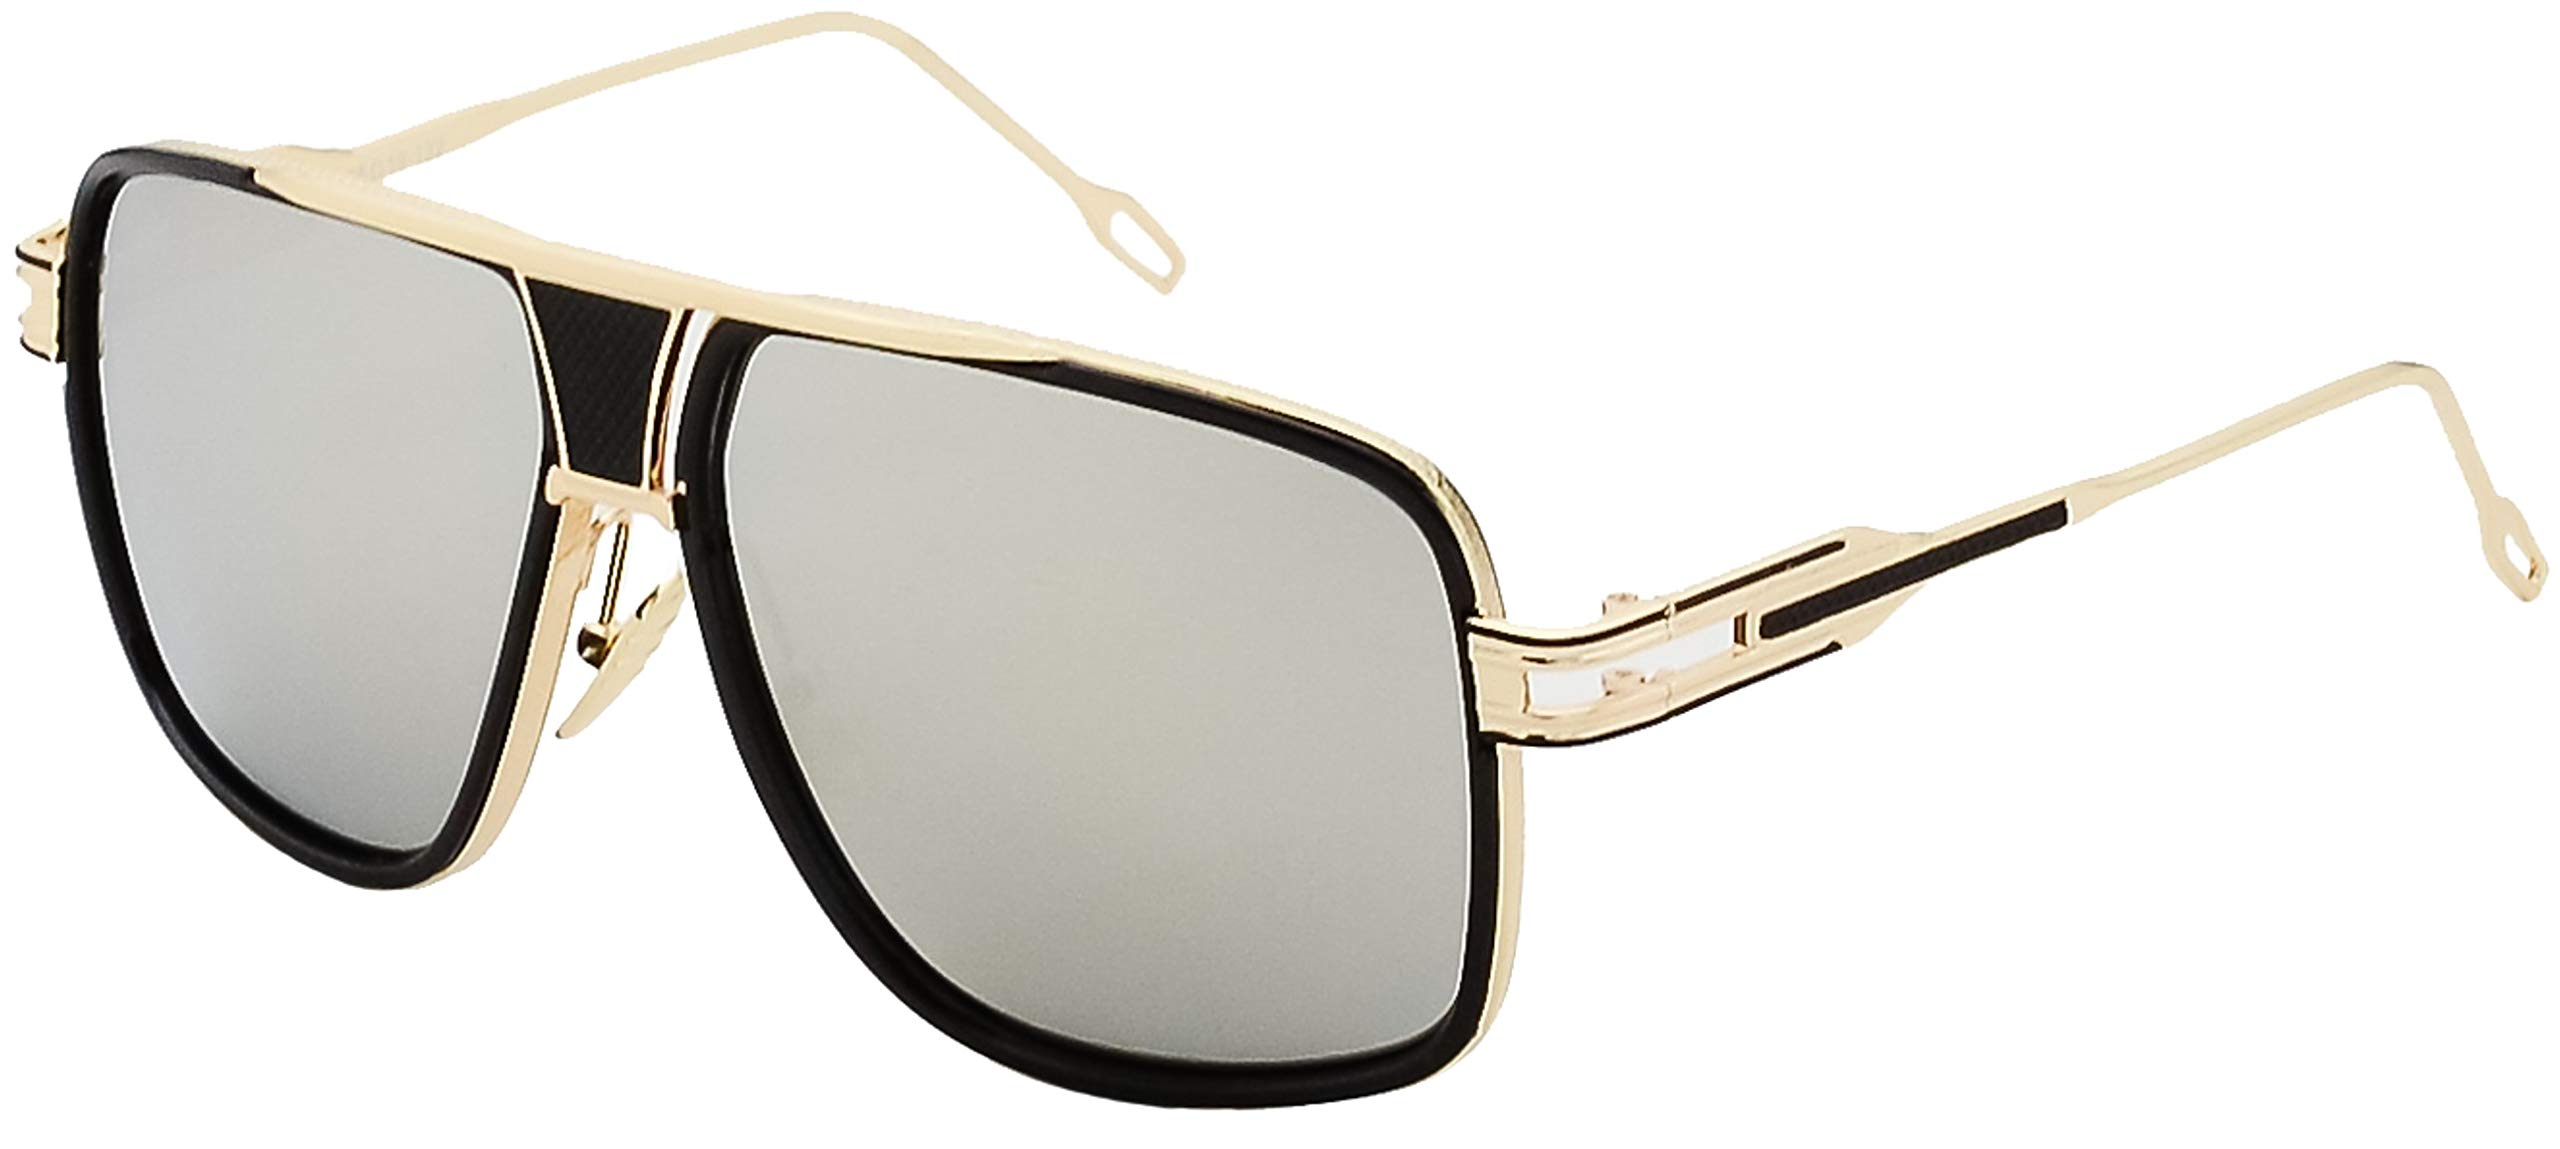 Square Sunglasses Gold and Black Frame Gold Nose Pads with Silver Mirror Lens by Stylle